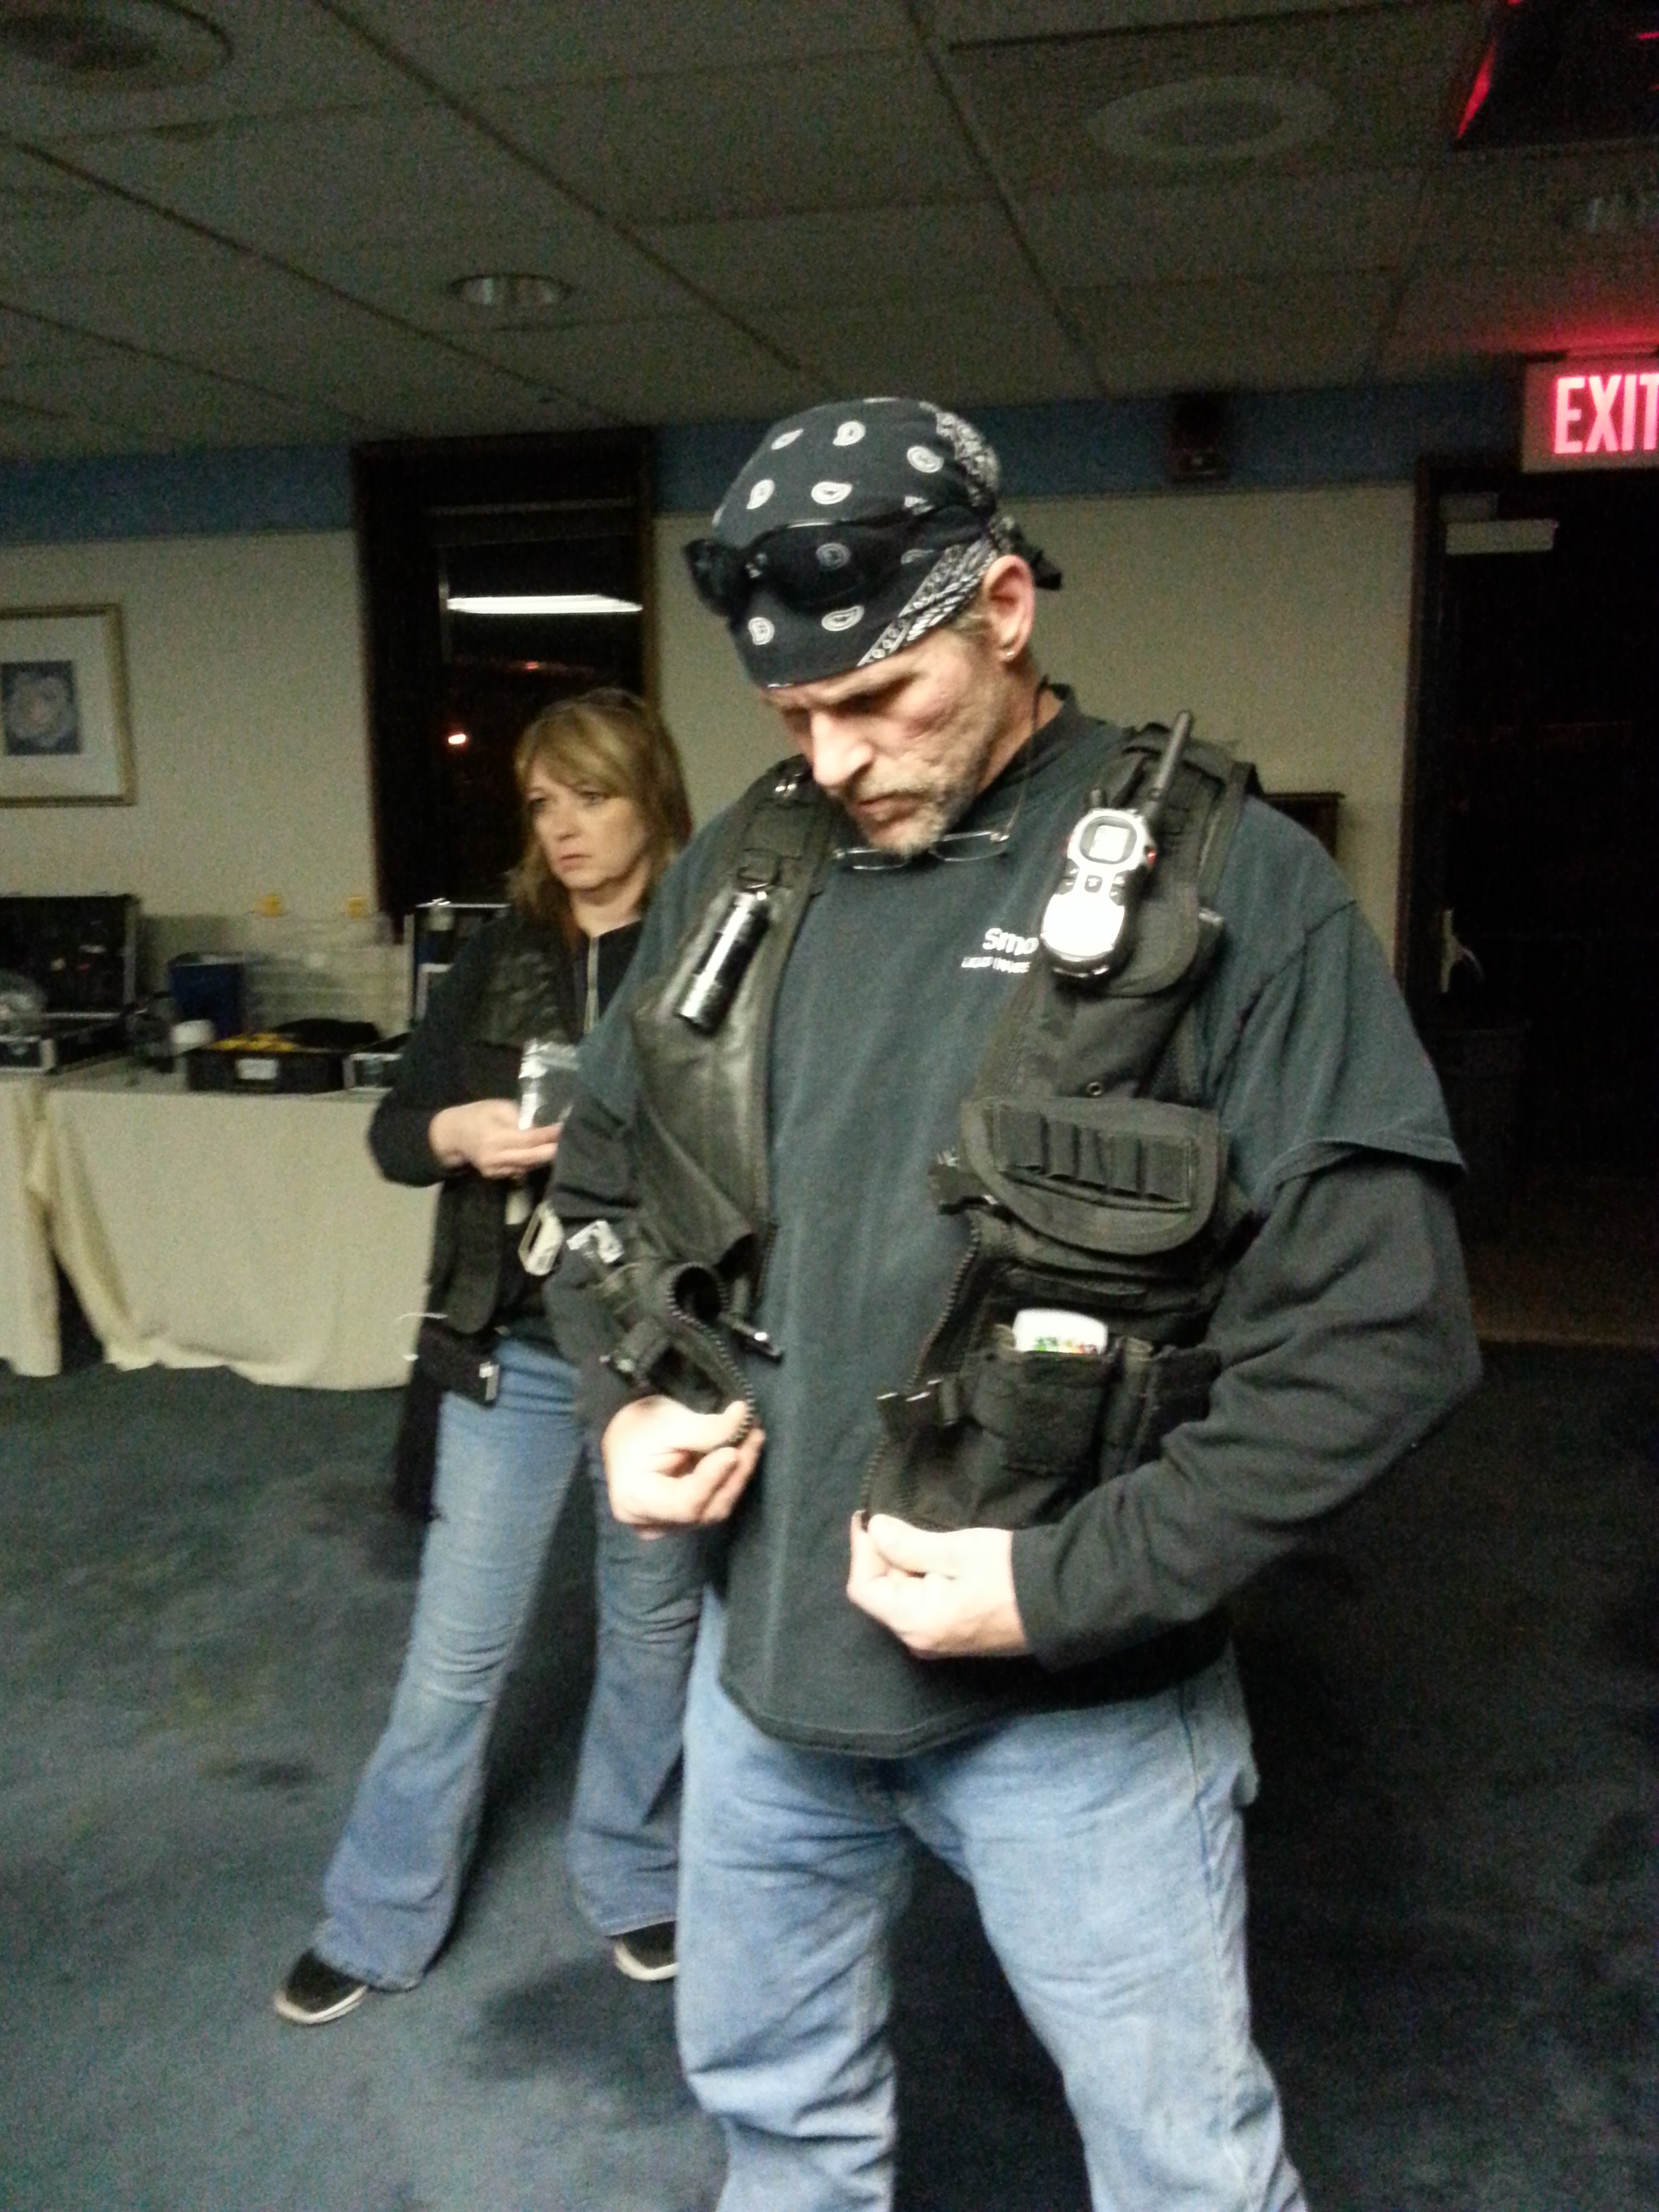 Lead investigator Smoke suiting up...